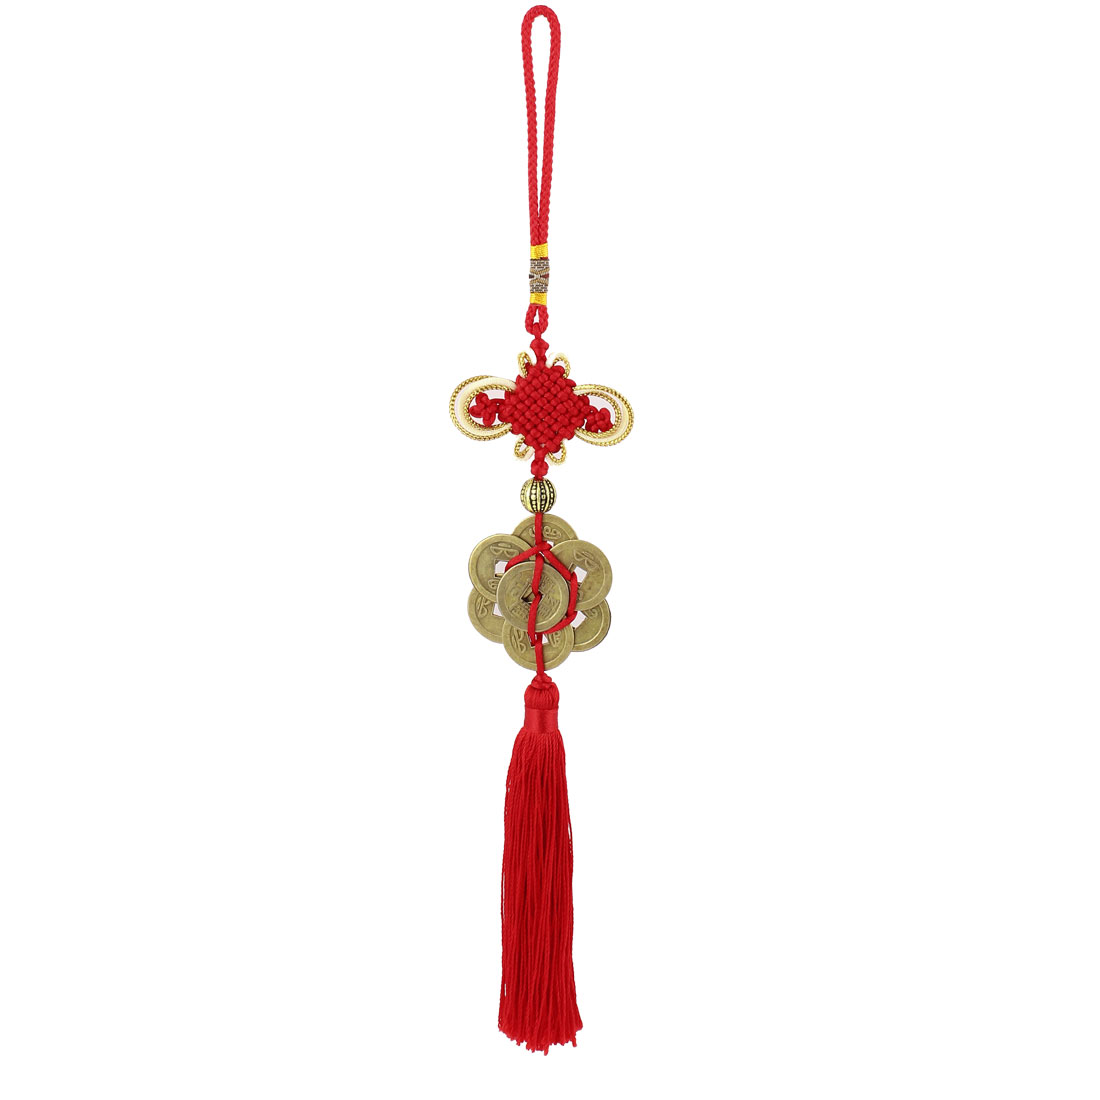 Car Vehicle Auto Chinese Knot Style Tassel Charm Copper Cash Pendant Hanging Ornament Decoration Gifts Red